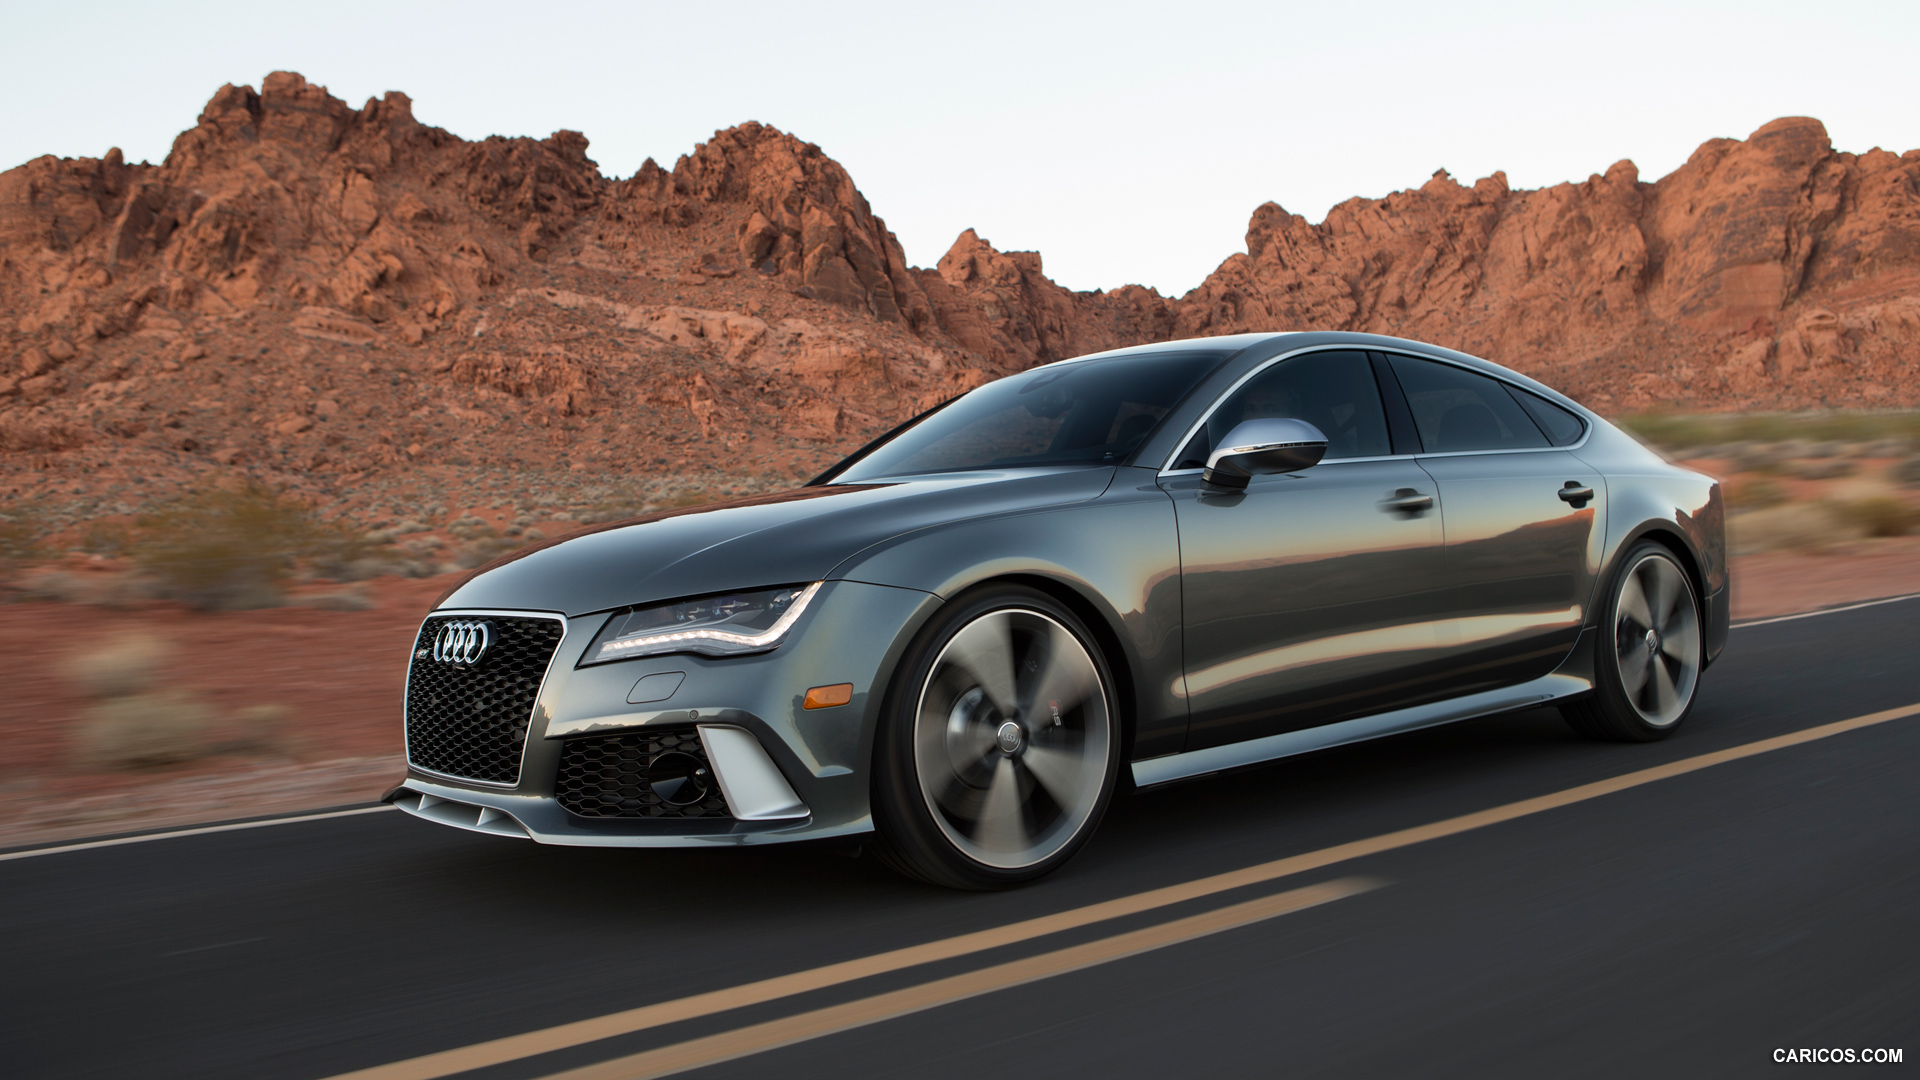 2016 Audi Rs7 Wallpaper Full Hd Pictures